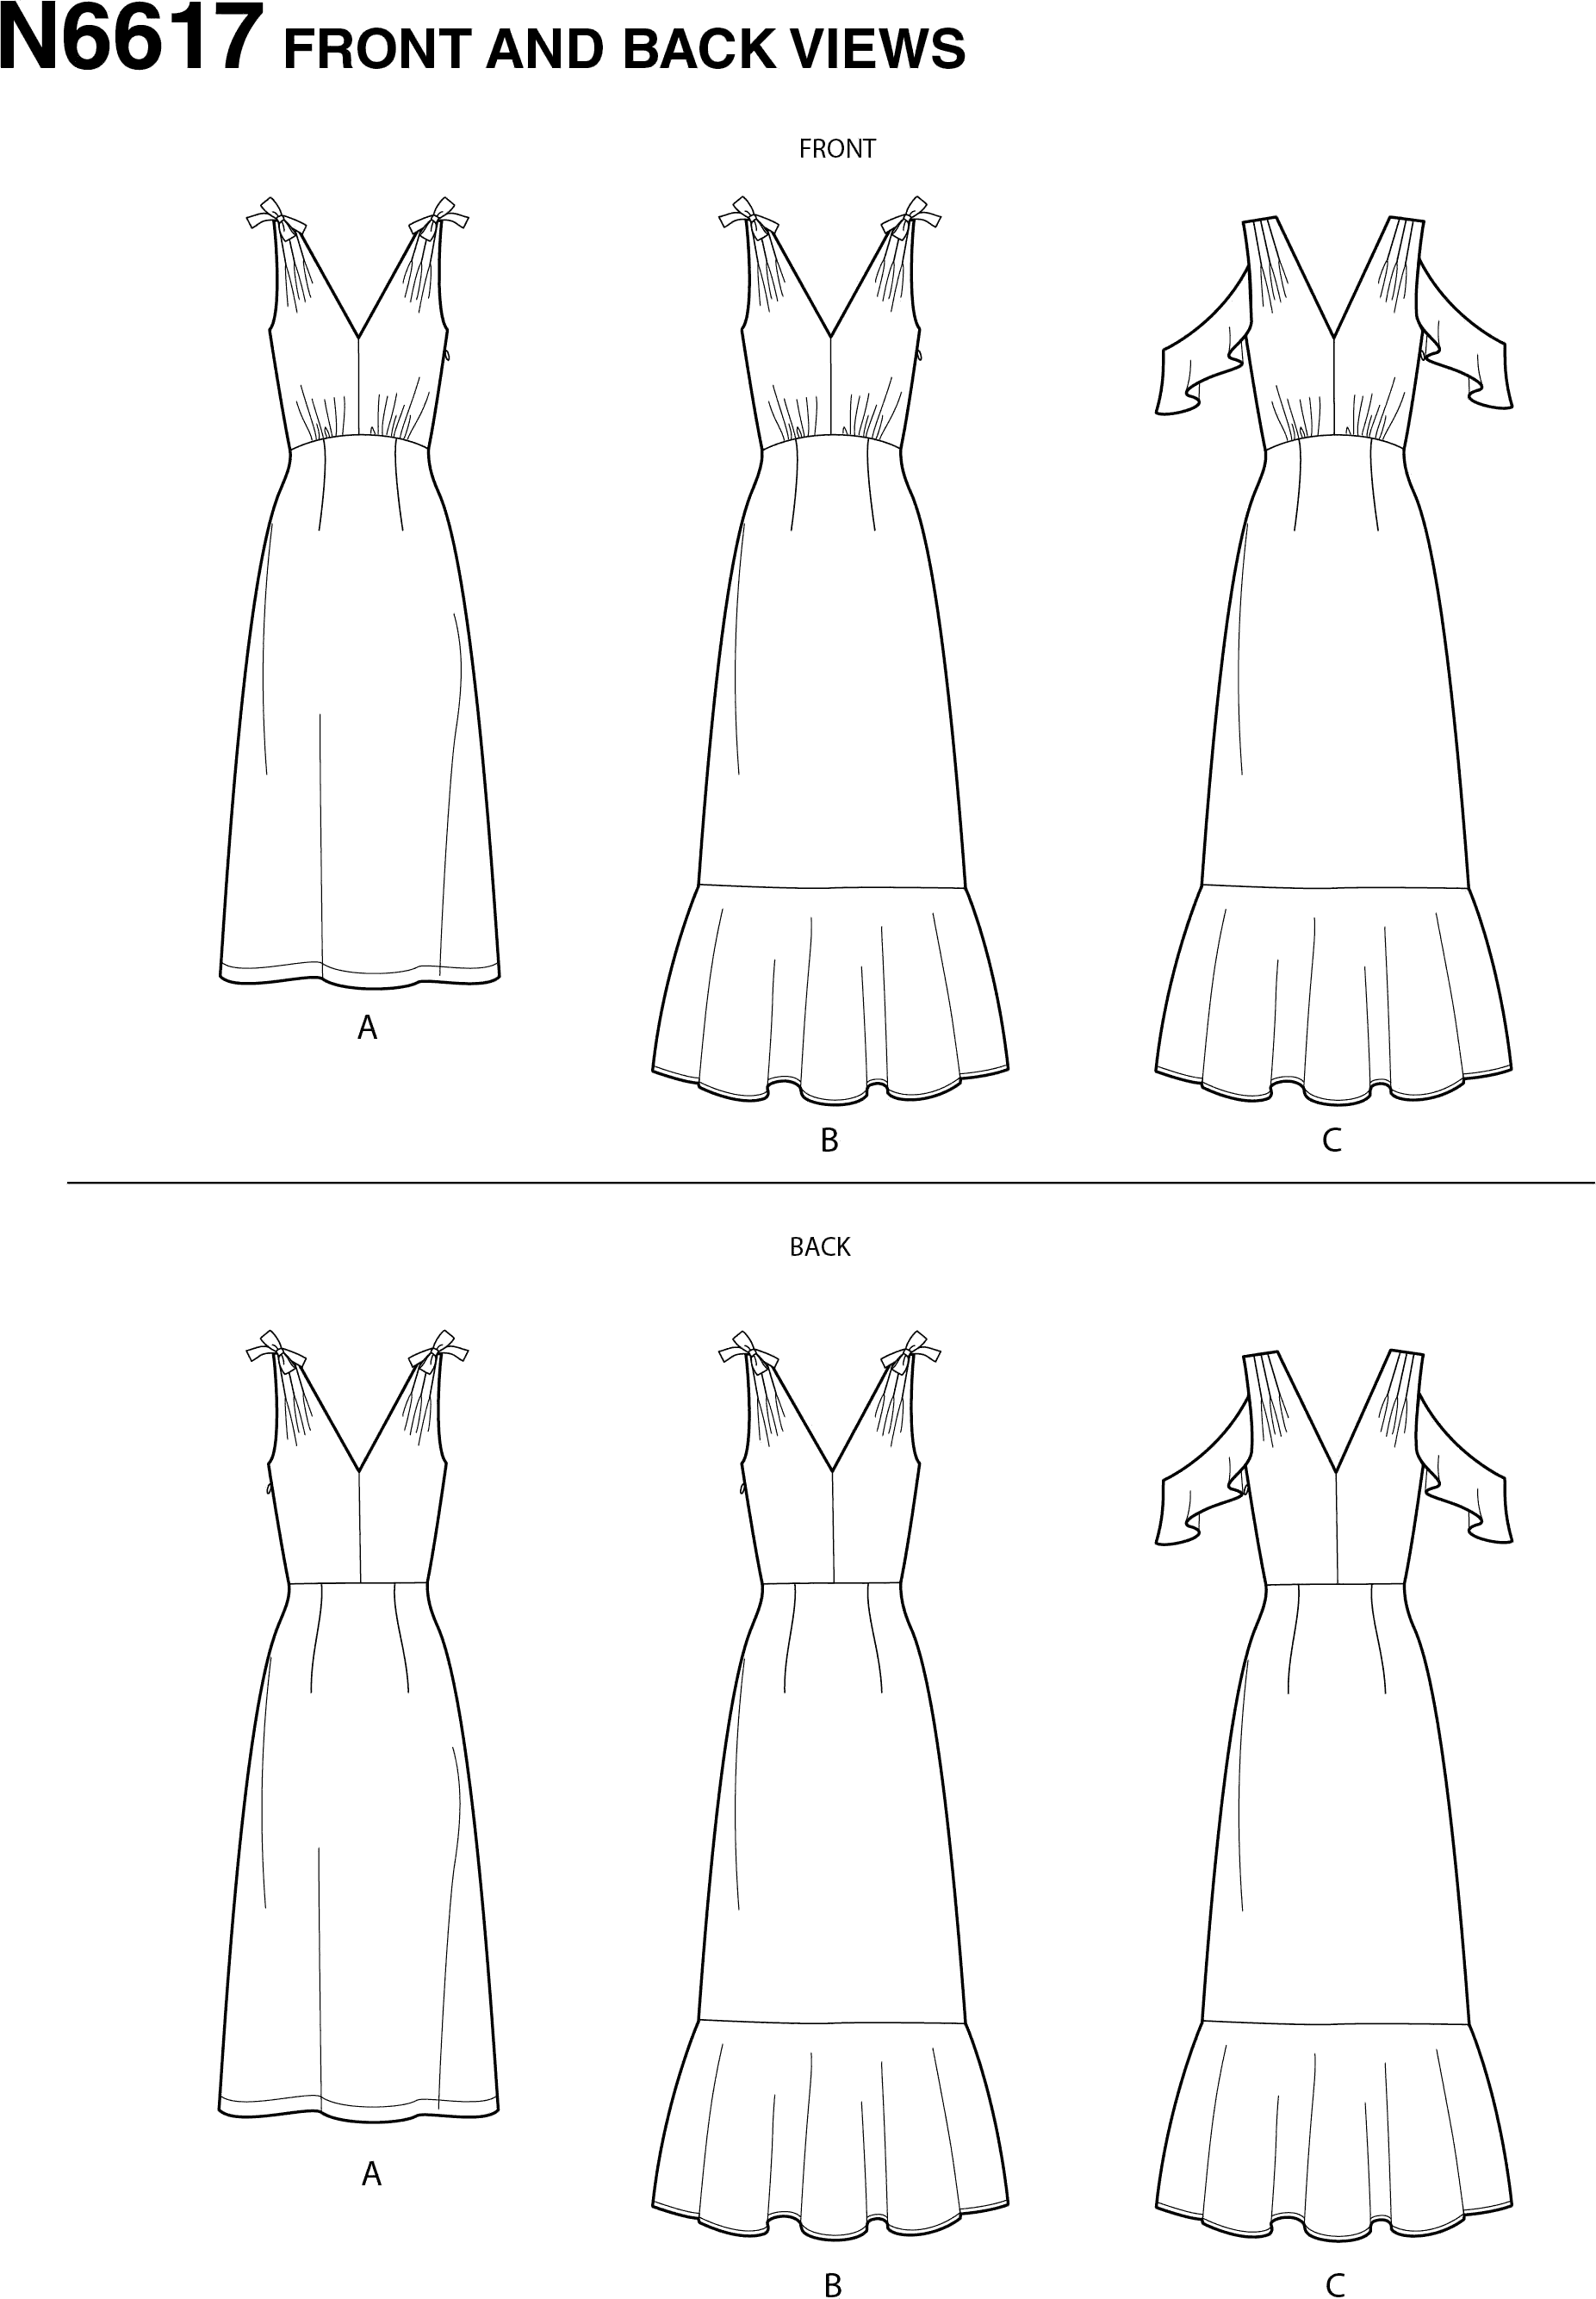 New Look Sewing Pattern N6617 Misses Dresses 6617 Line Art From Patternsandplains.com